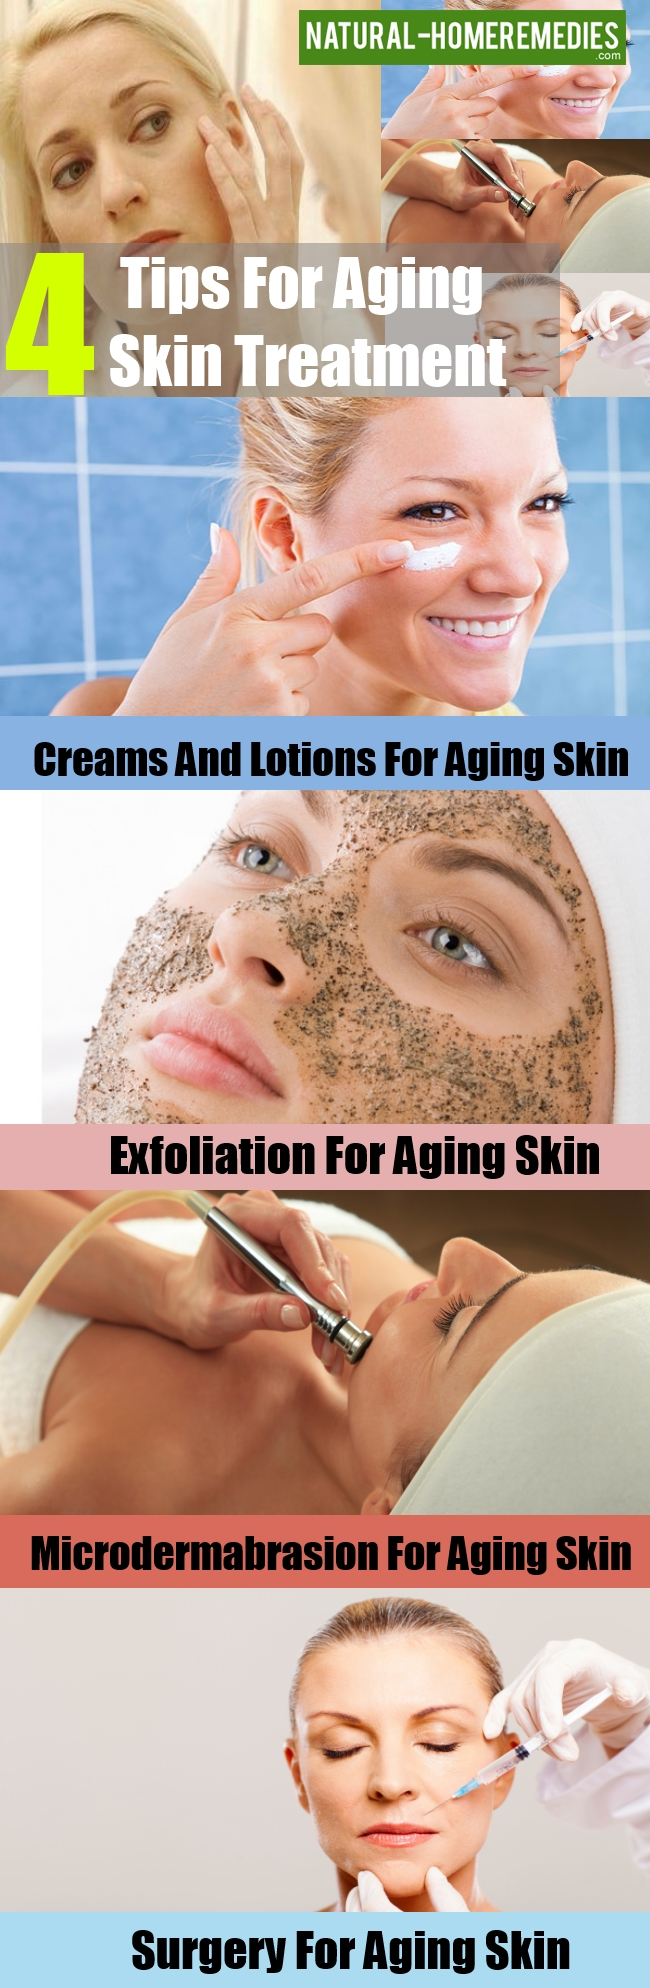 Tips For Aging Skin Treatment